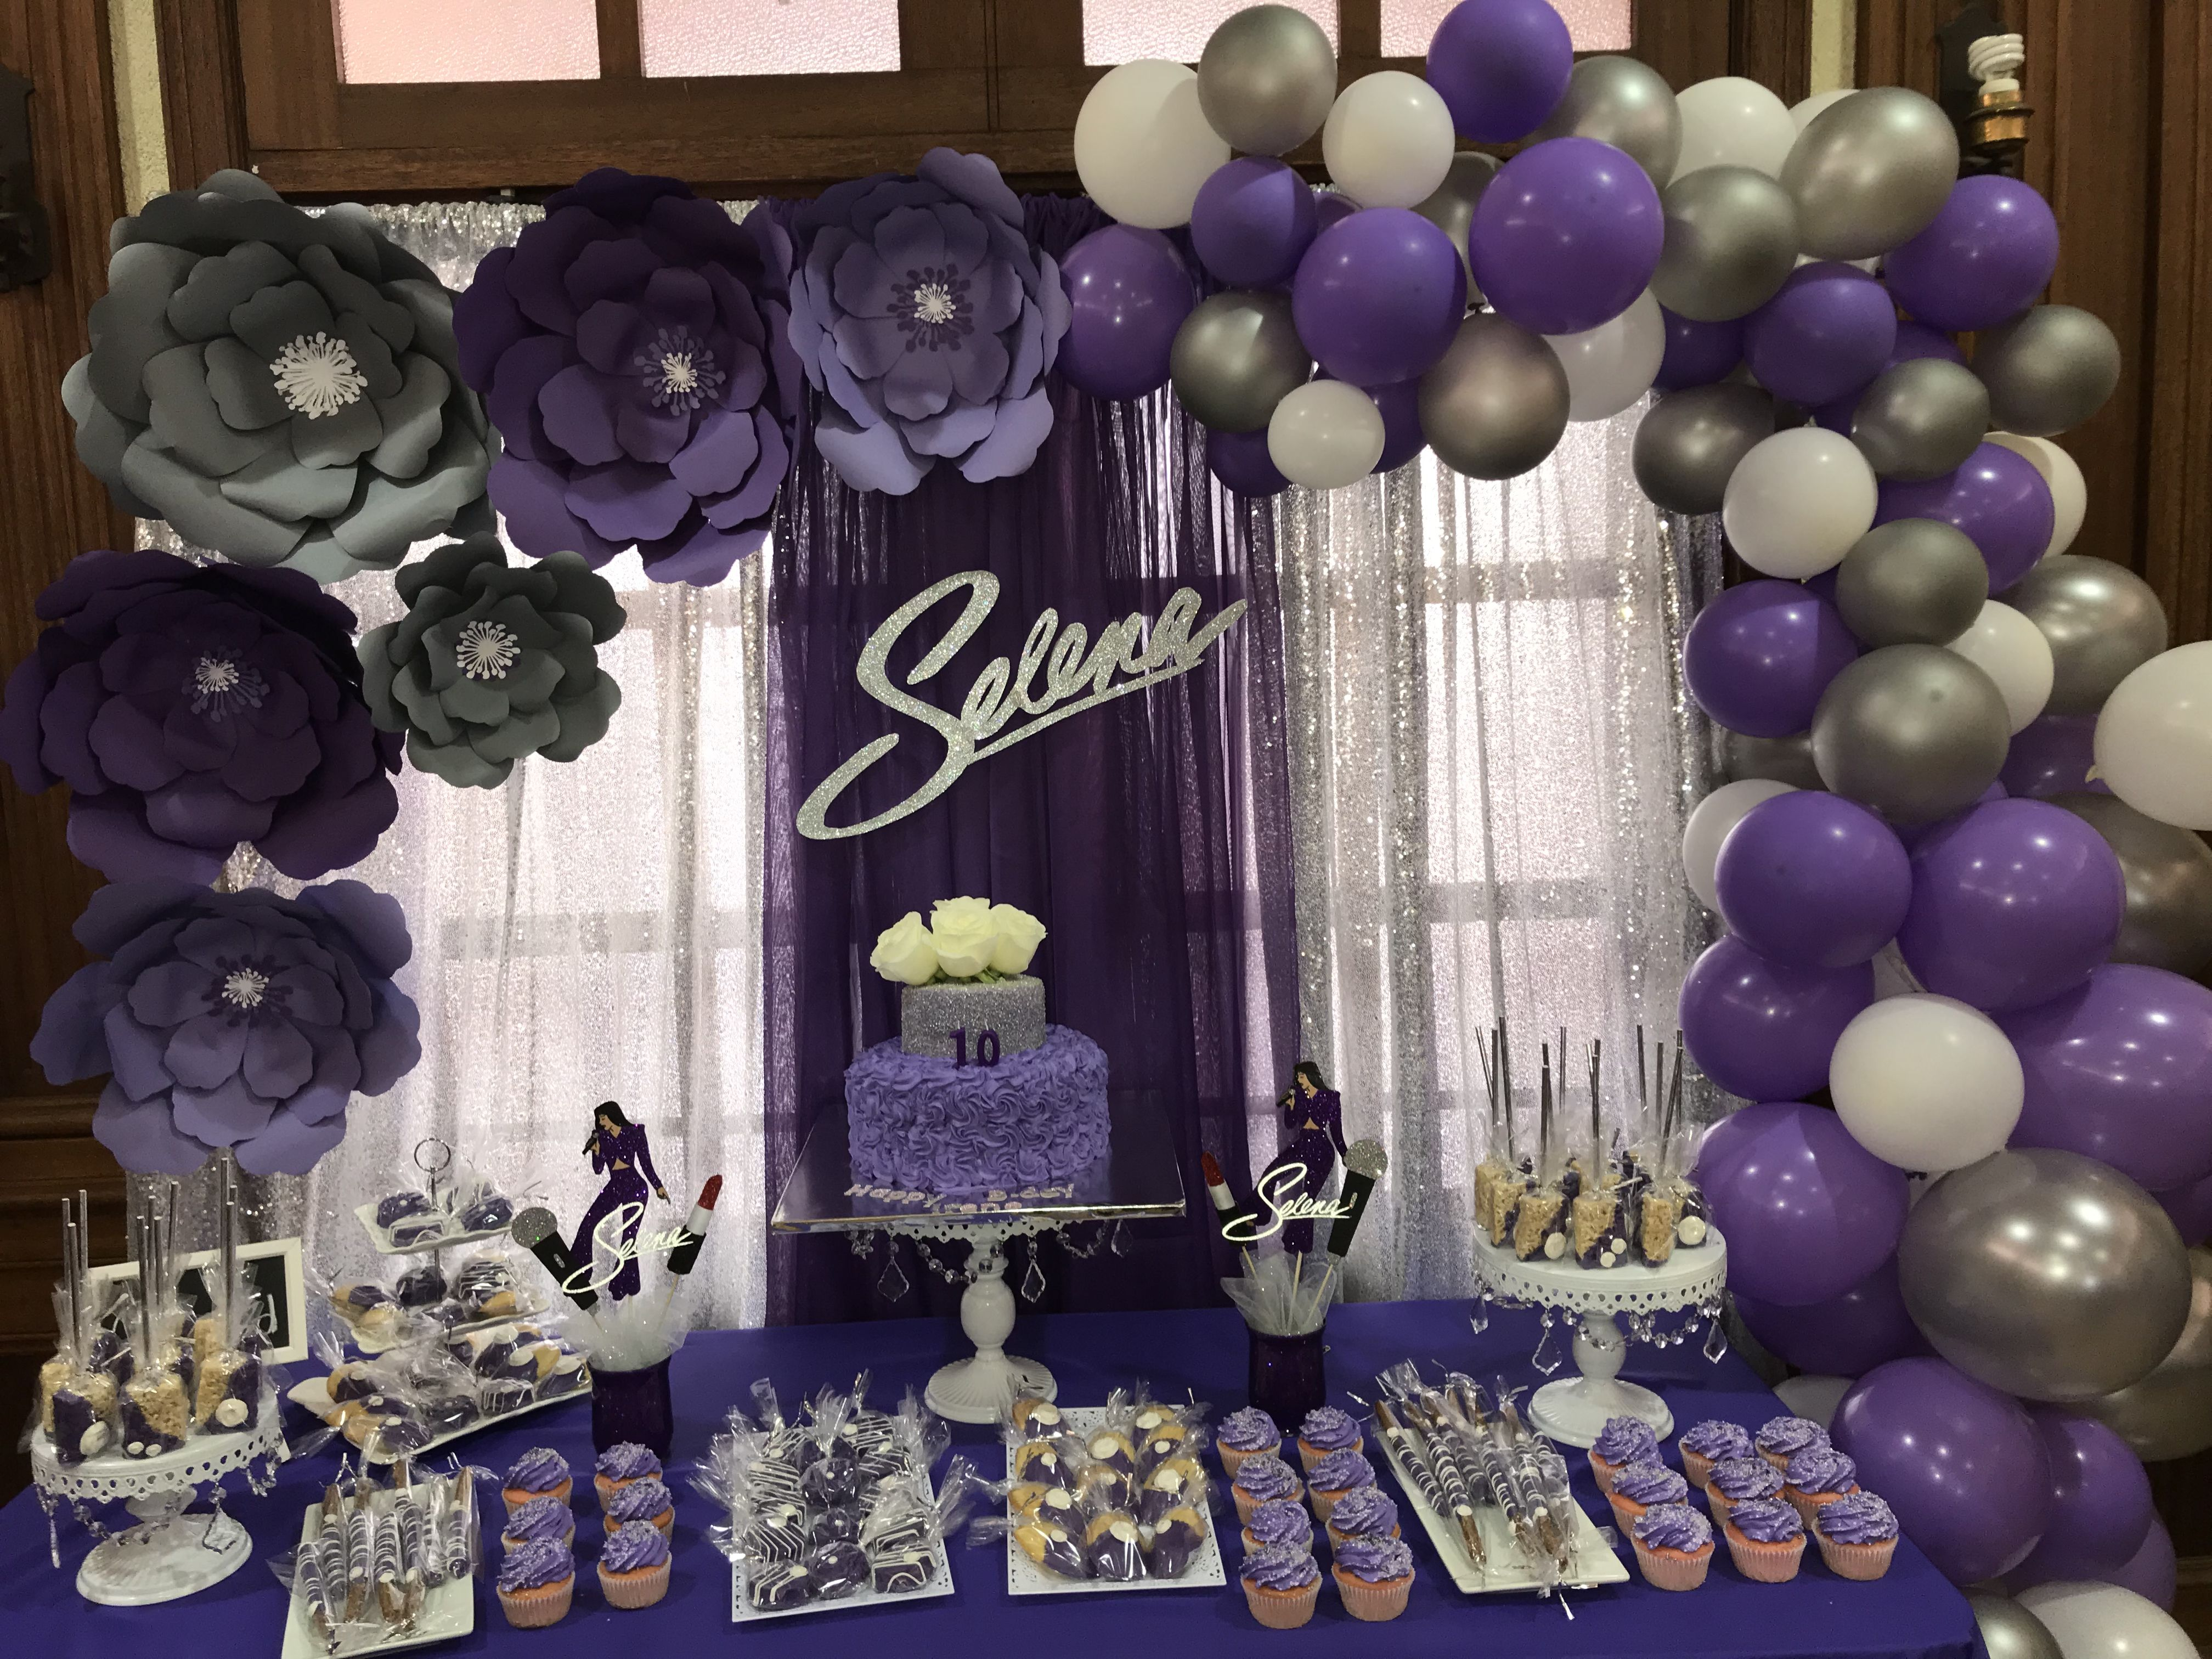 Pin by Angela Luna on Bella's 1st Bday Selena